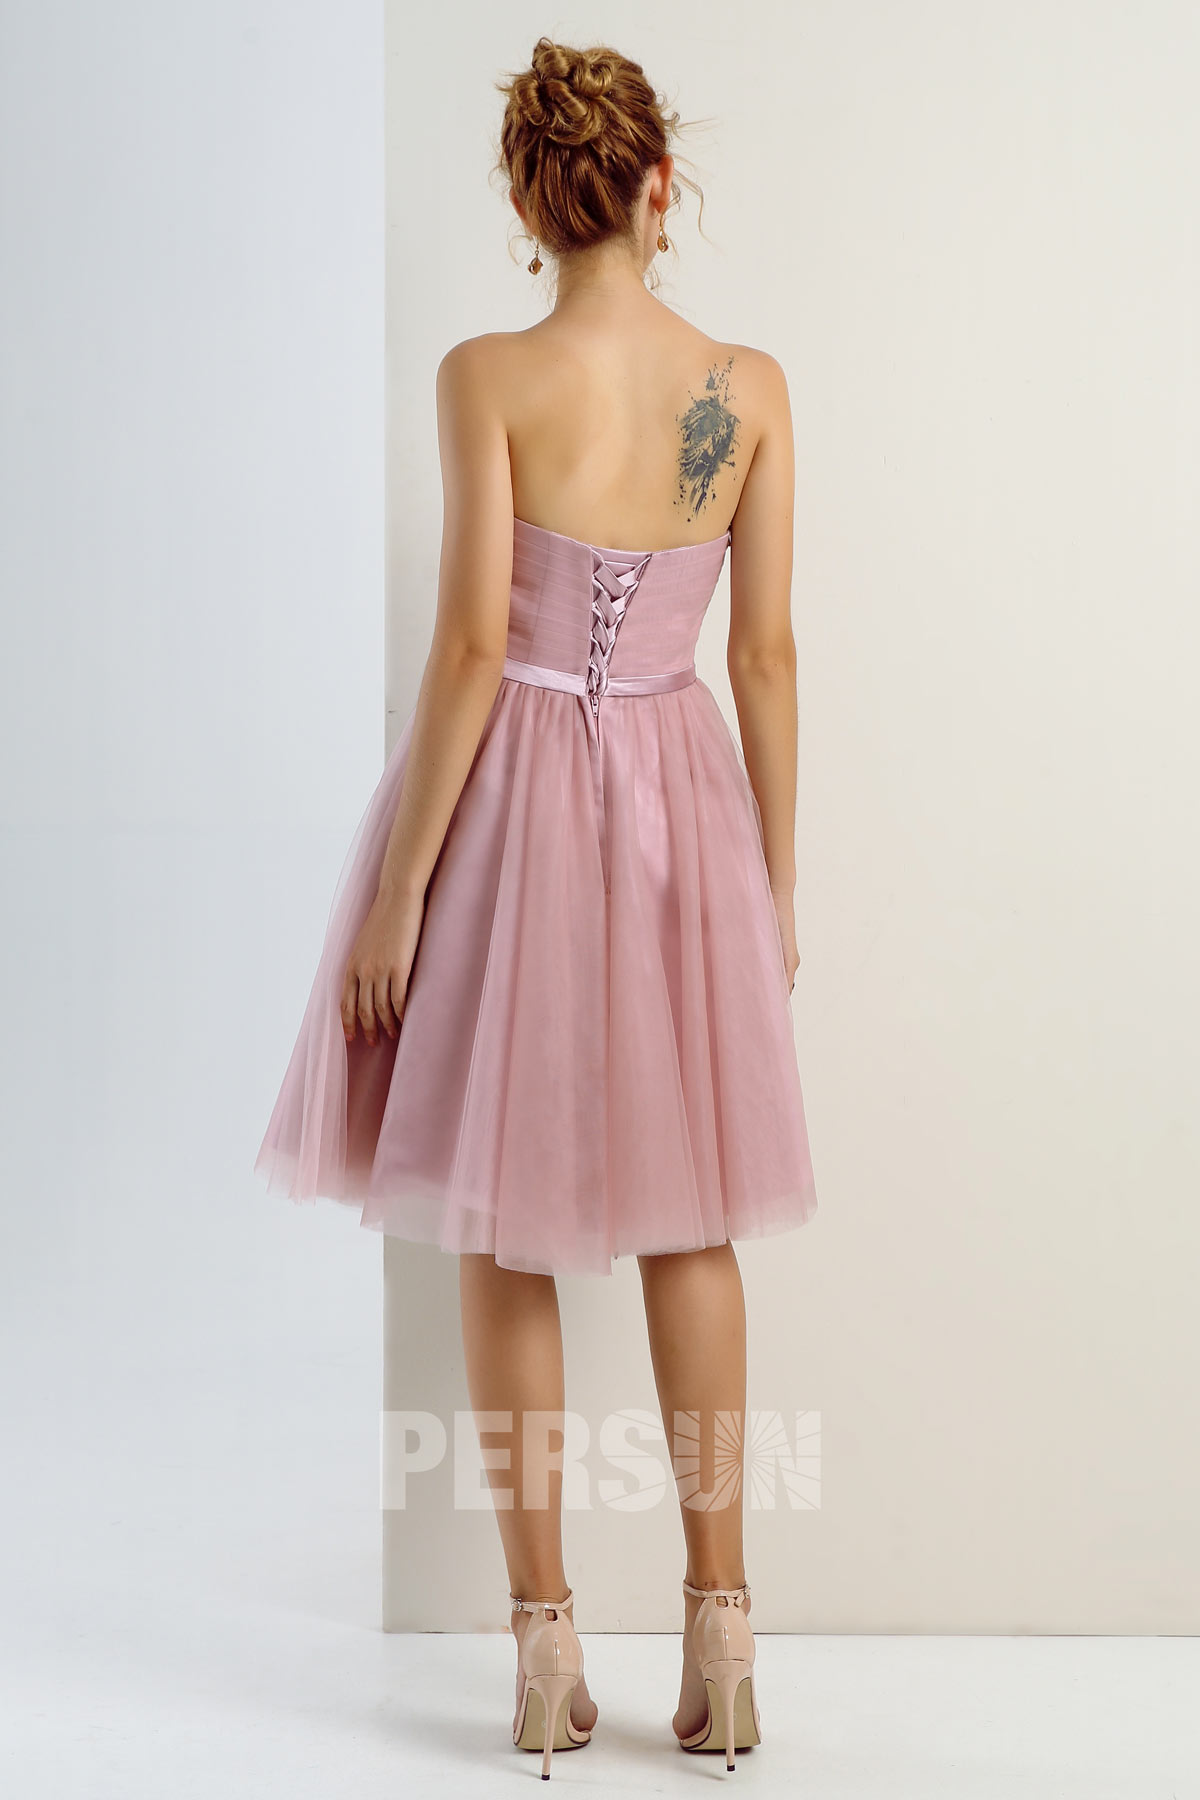 Robe cocktail mariage rose carnation bustier droit en tulle